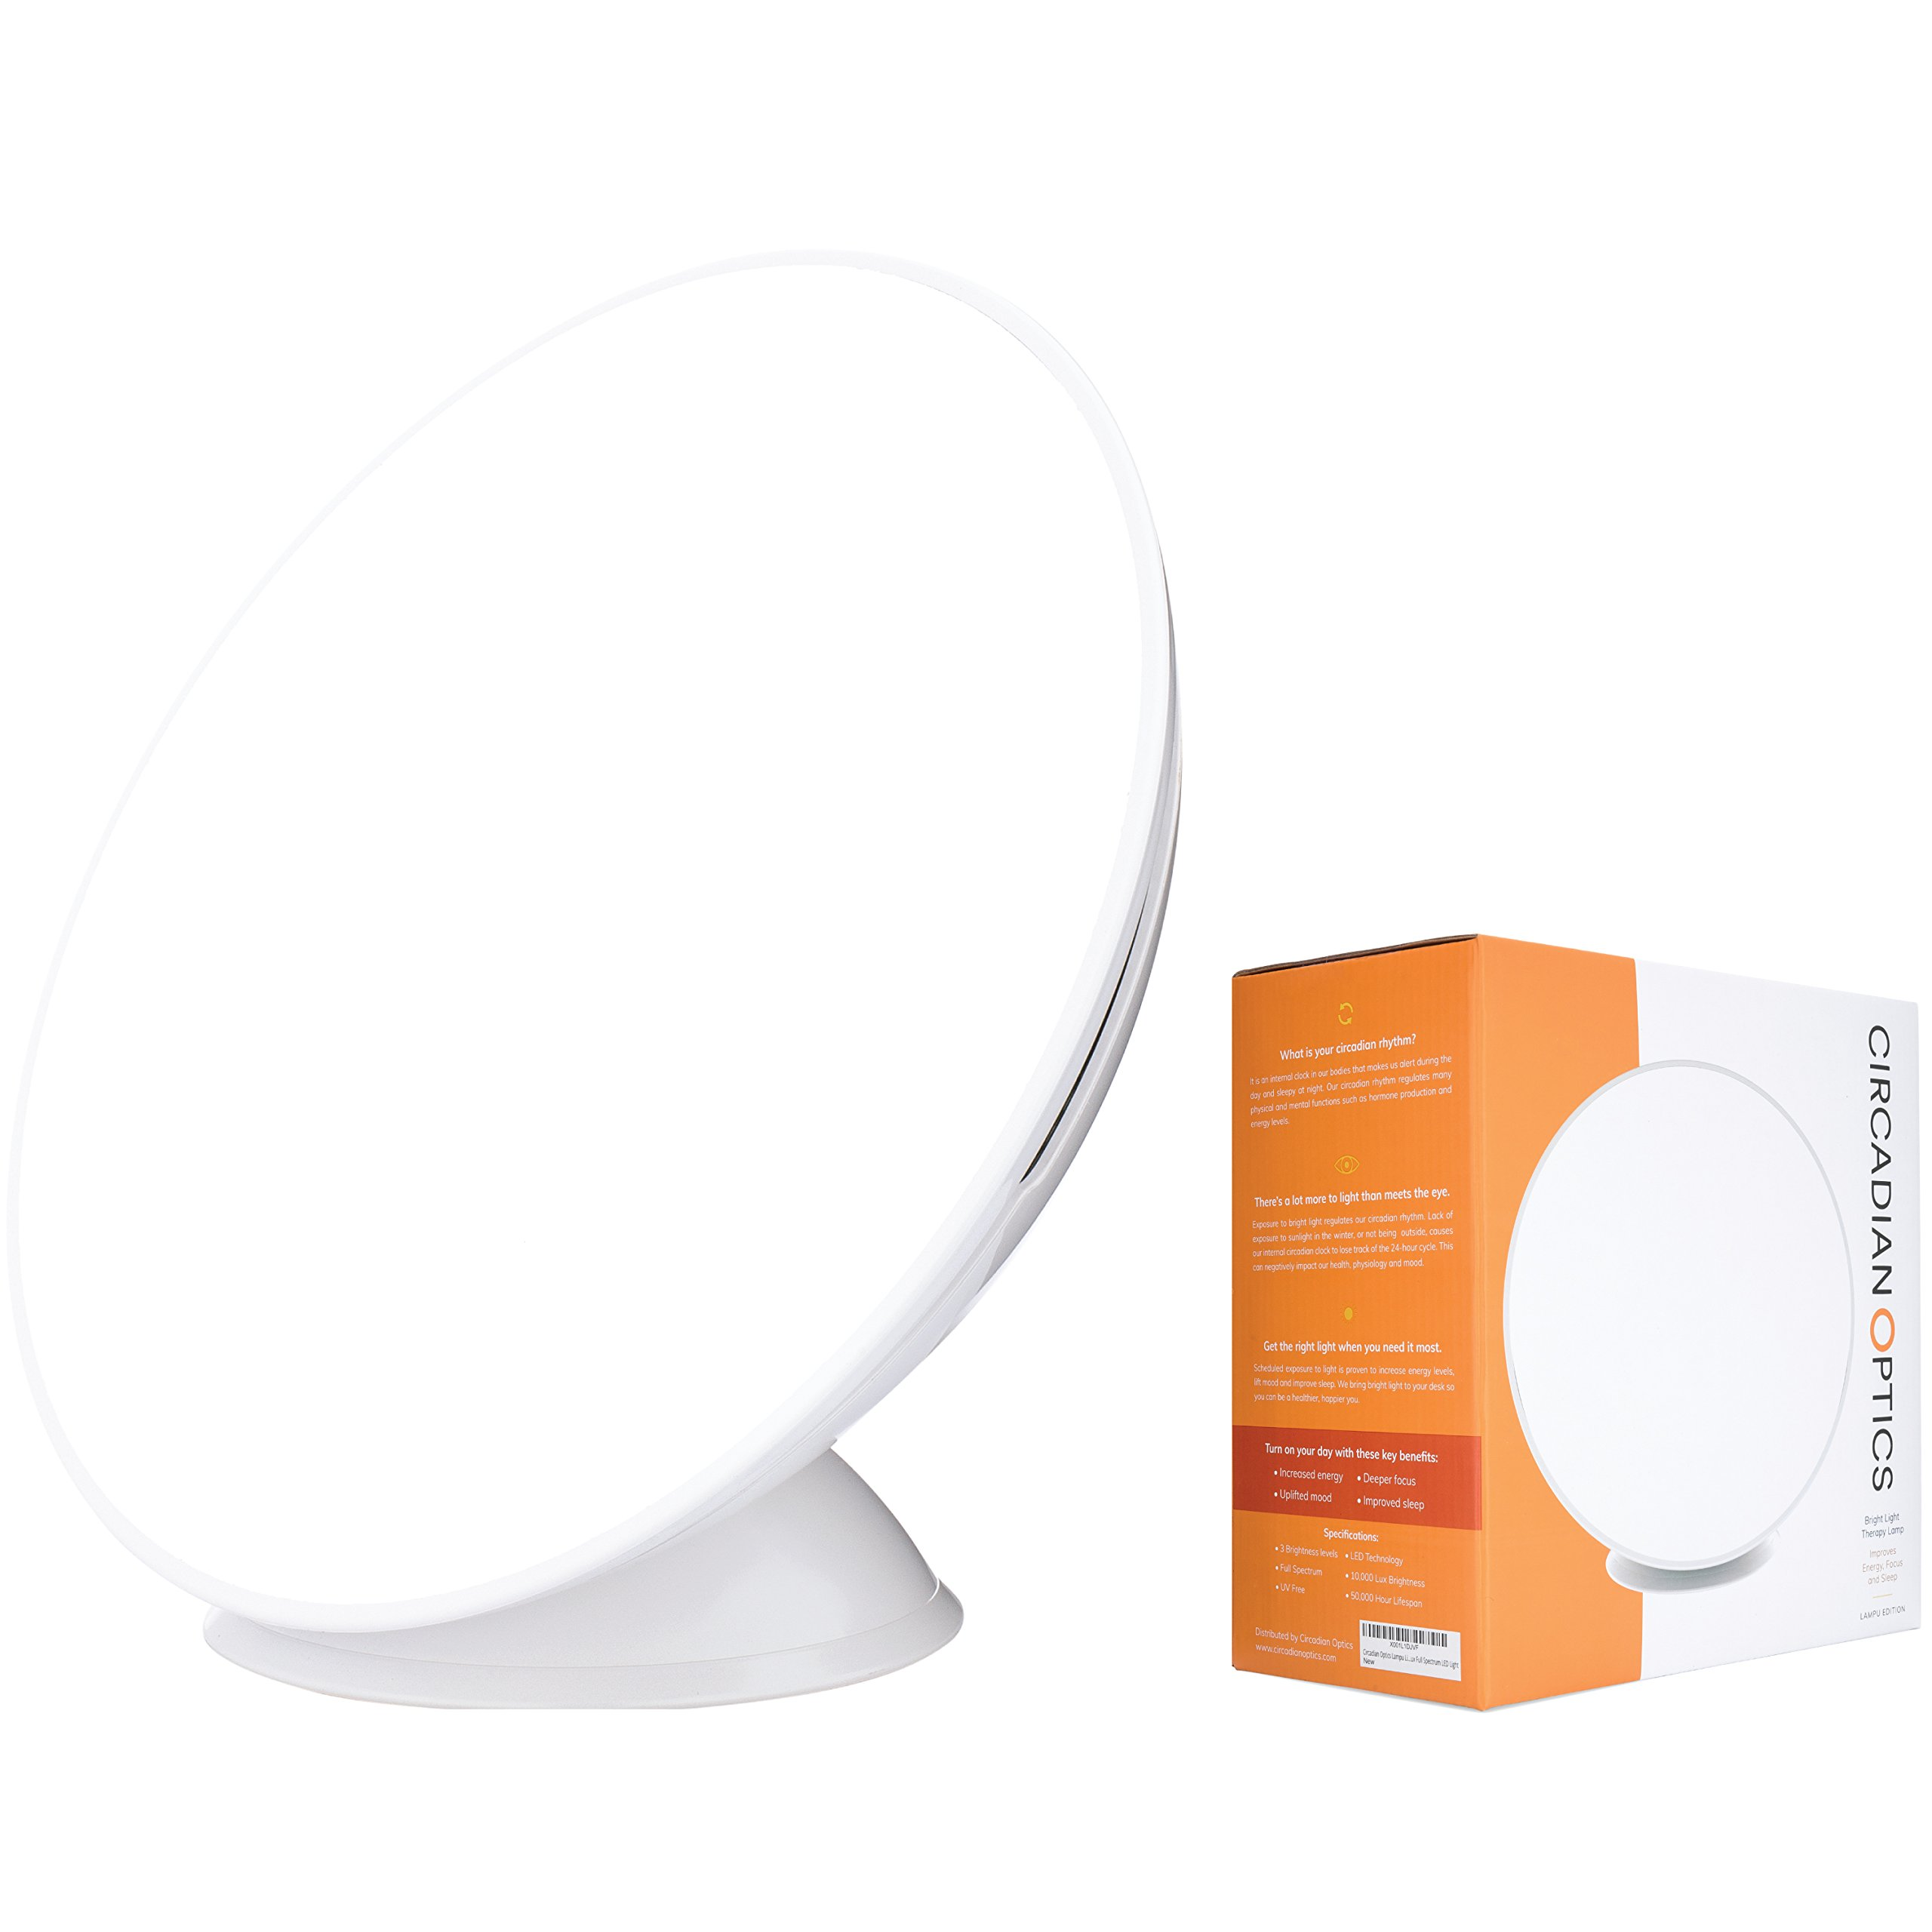 Circadian Optics Lampu Light Therapy Lamp | As Seen On Shark Tank | 10,000 LUX Ultra Bright LED | Full Spectrum UV Free | Organically Round | Turn On Your Day by Circadian Optics